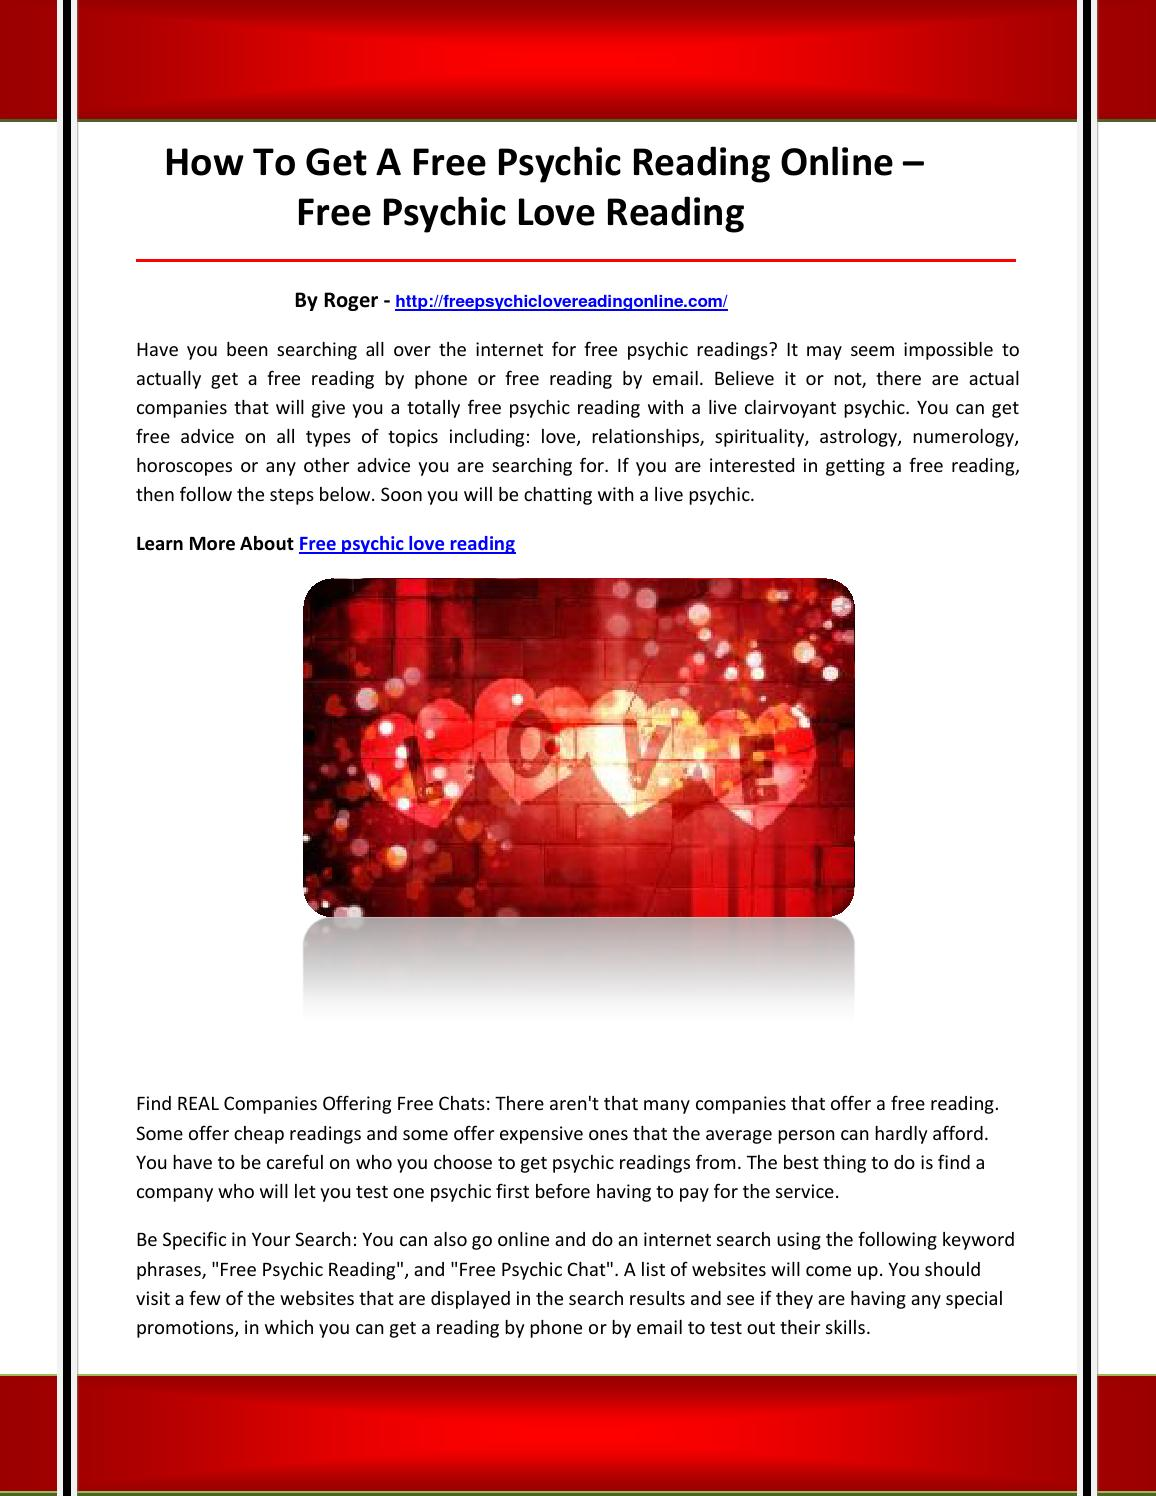 Reading free chat love Free Psychic